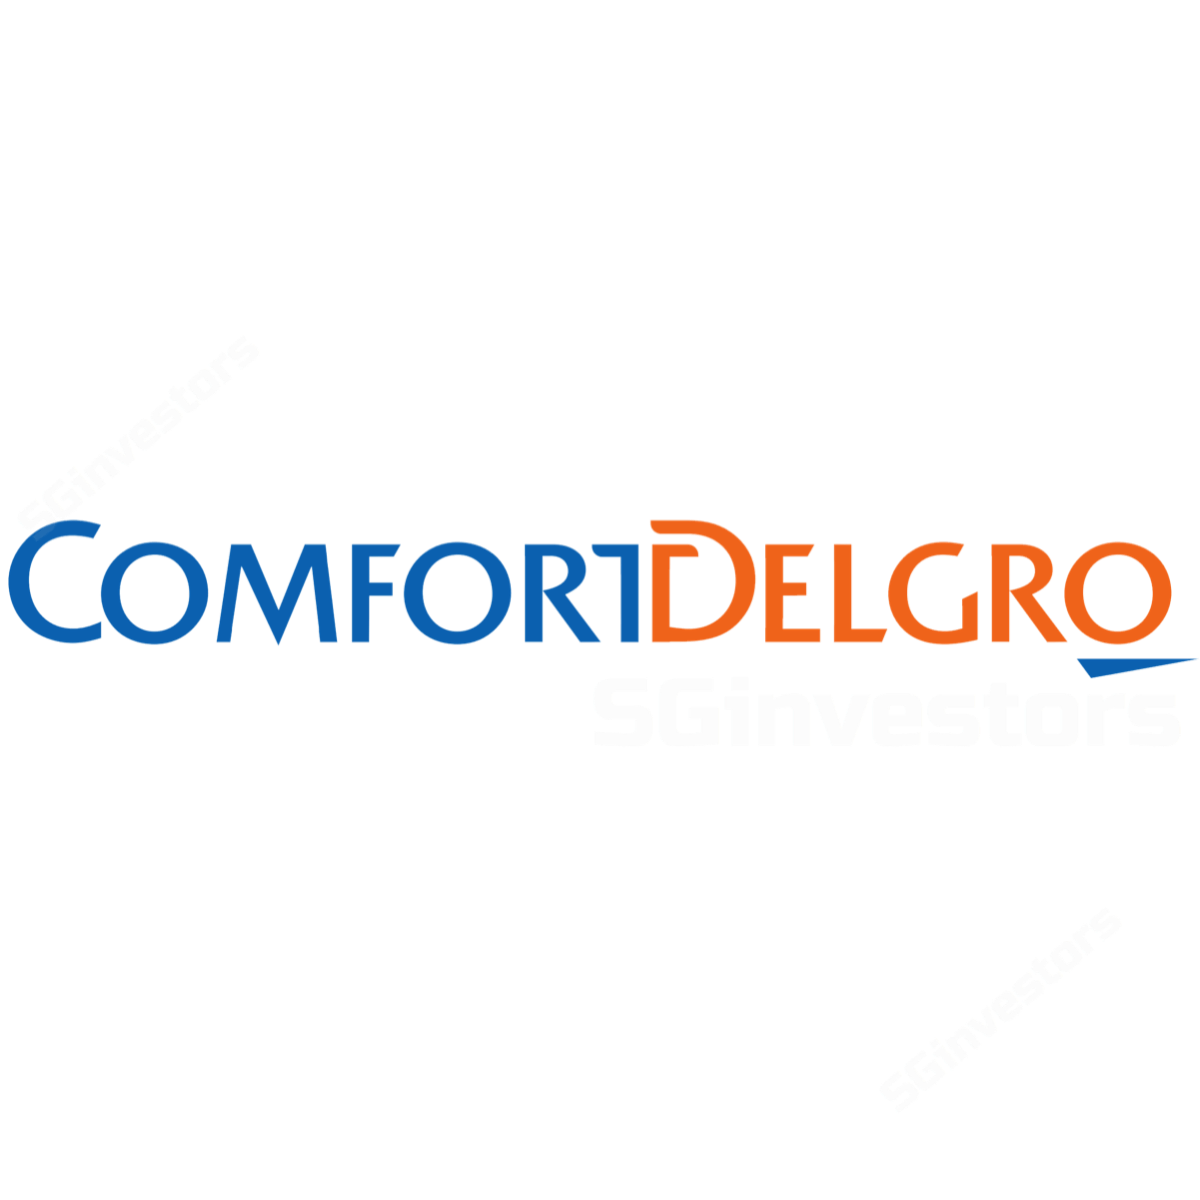 ComfortDelGro Corp Ltd - Phillip Securities 2017-11-13: Strong Cash Generation, Absolute Dividend Level Sustainable